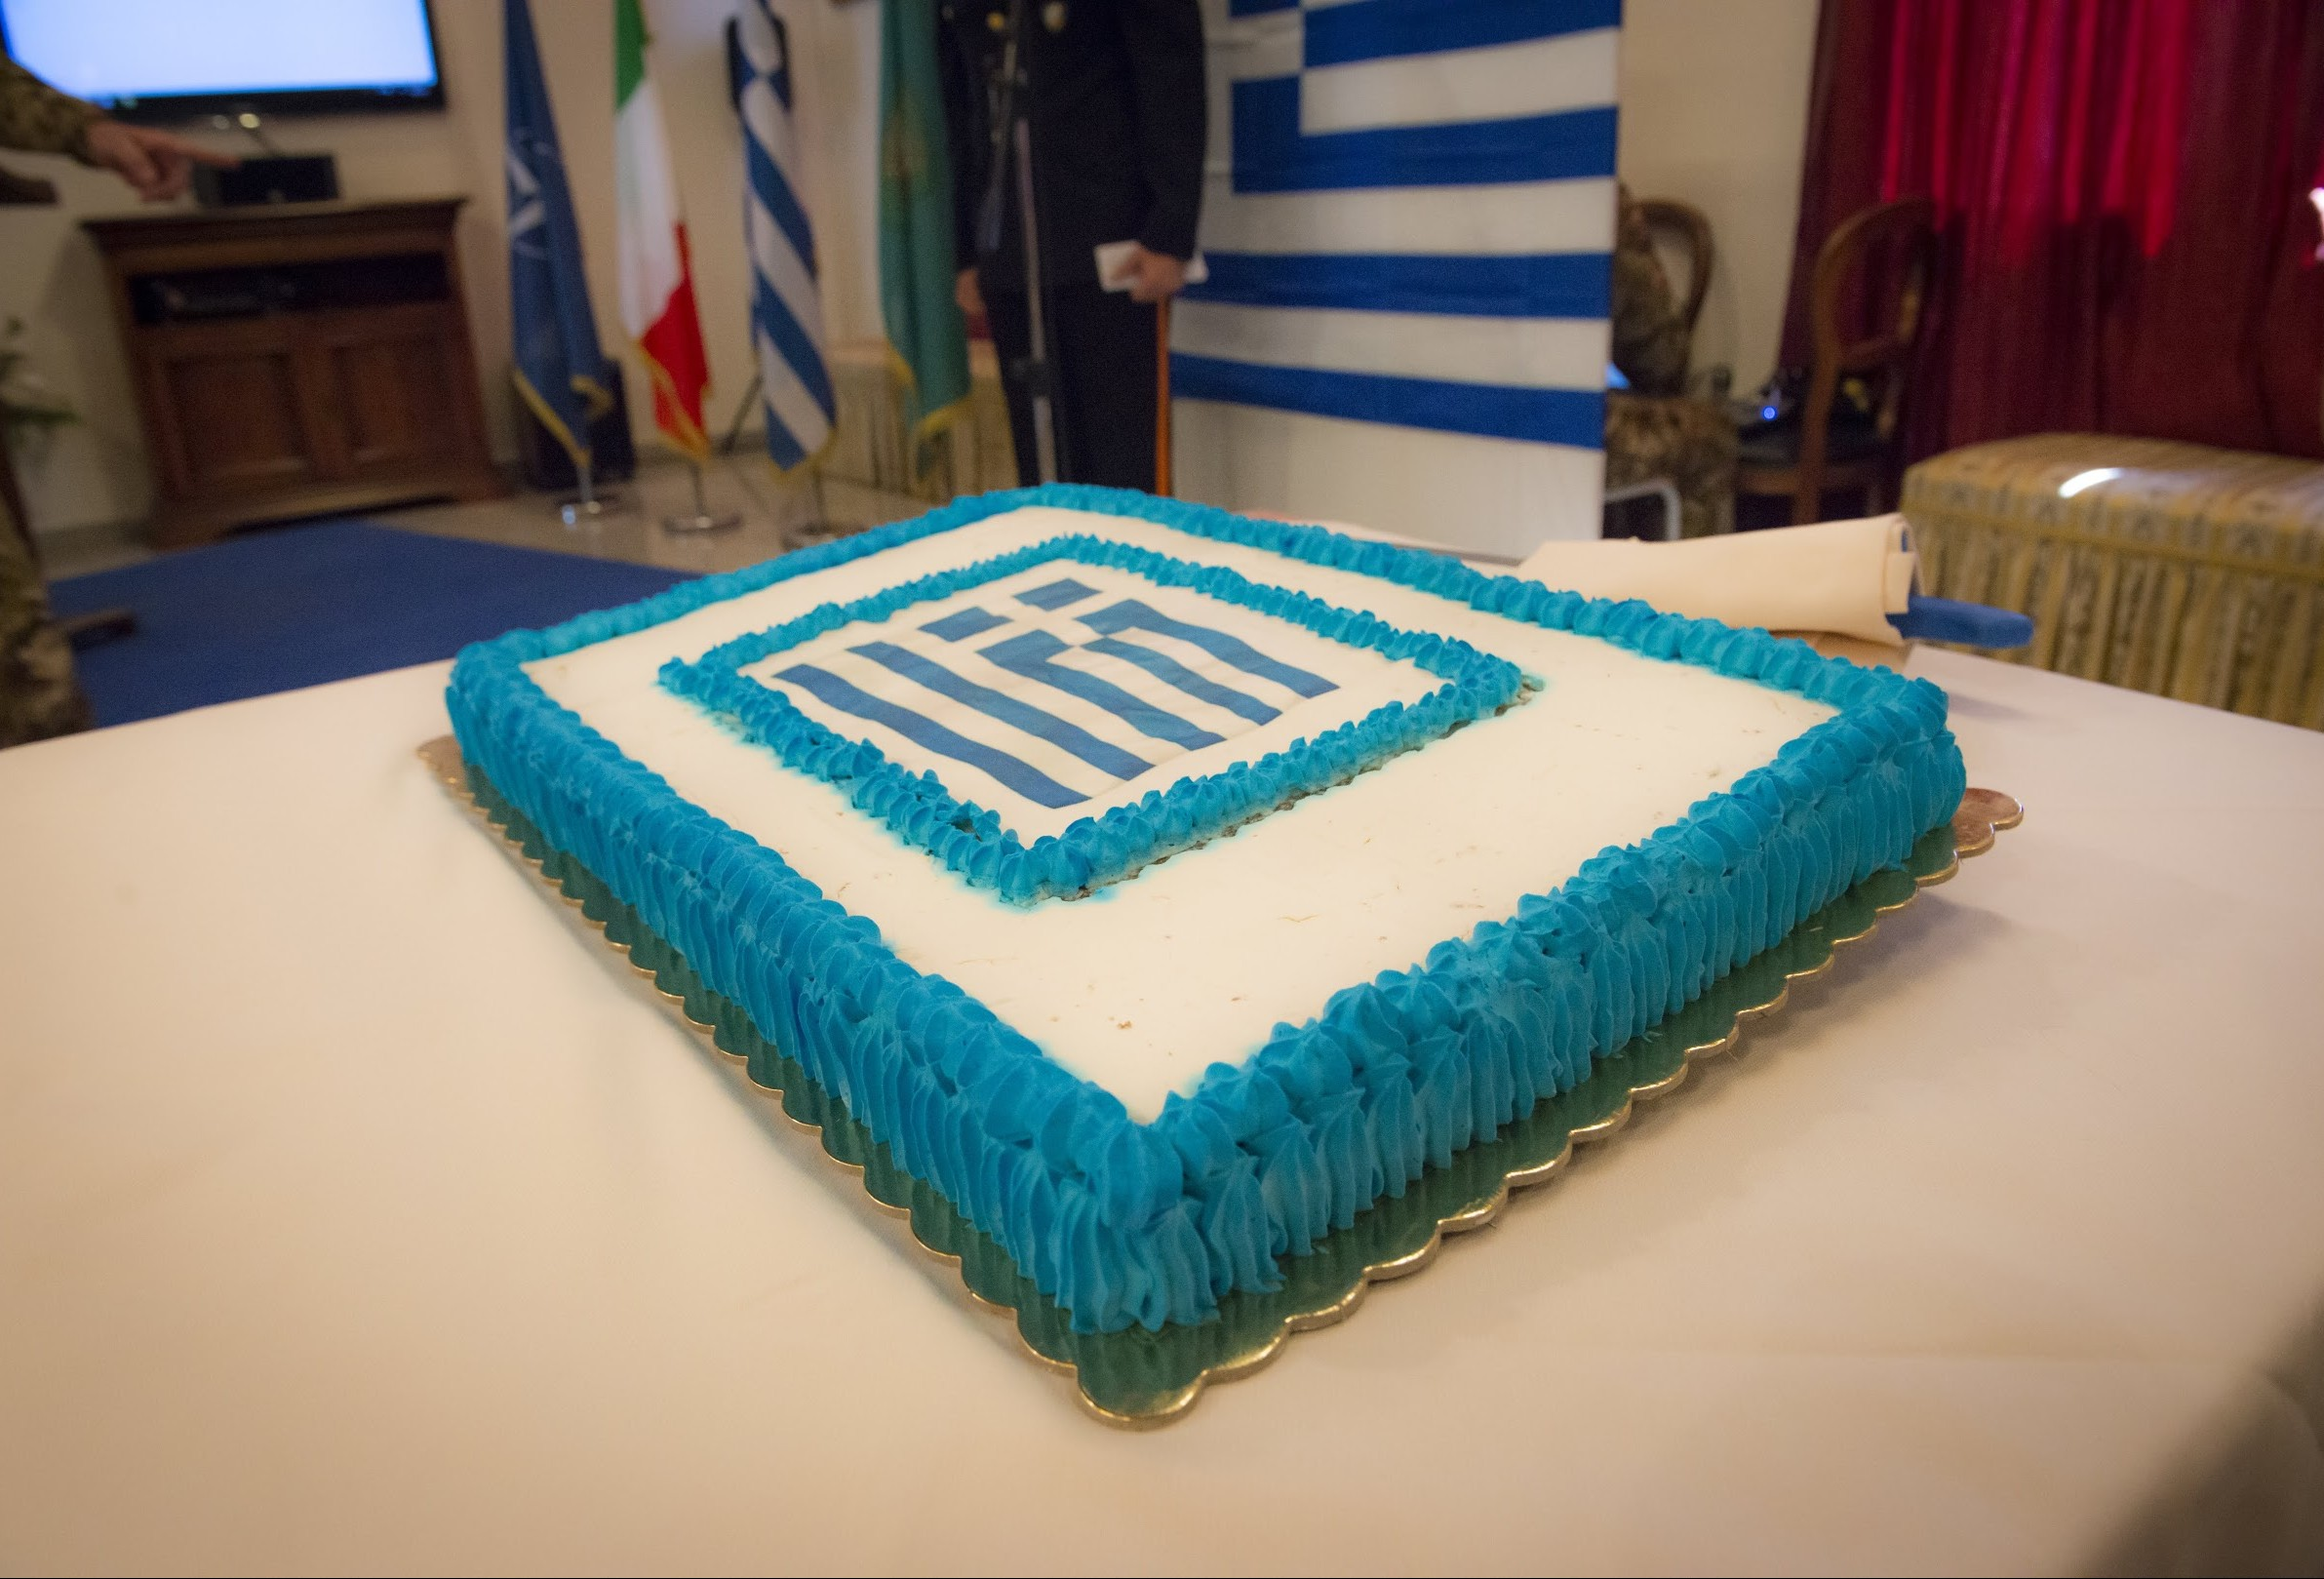 HELLENIC NATIONAL DAY CELEBRATED AT NRDC - ITA